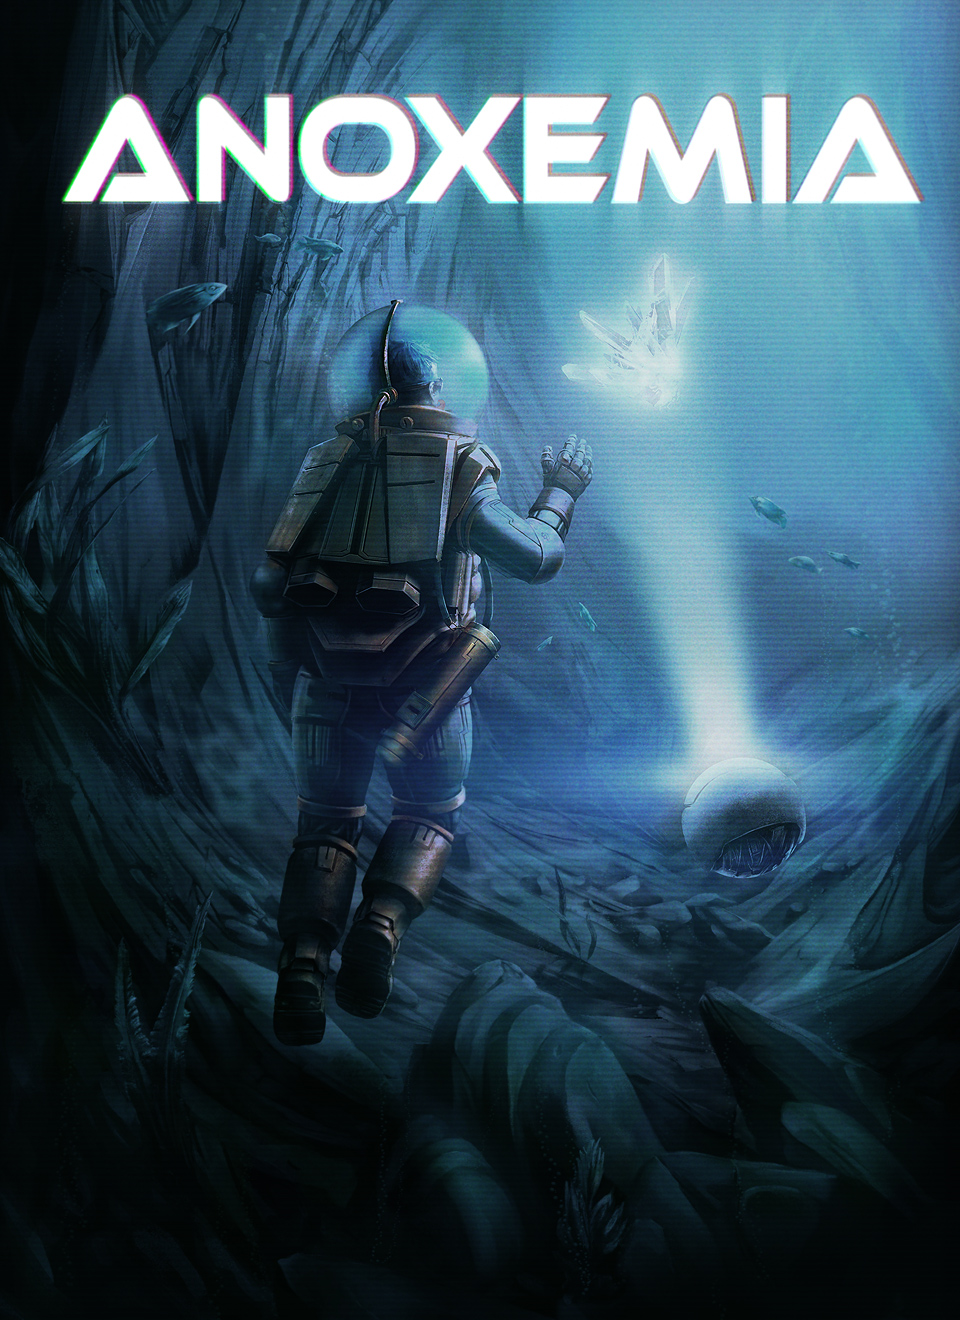 Anoxemia Wallpapers Video Game Hq Anoxemia Pictures 4k Images, Photos, Reviews